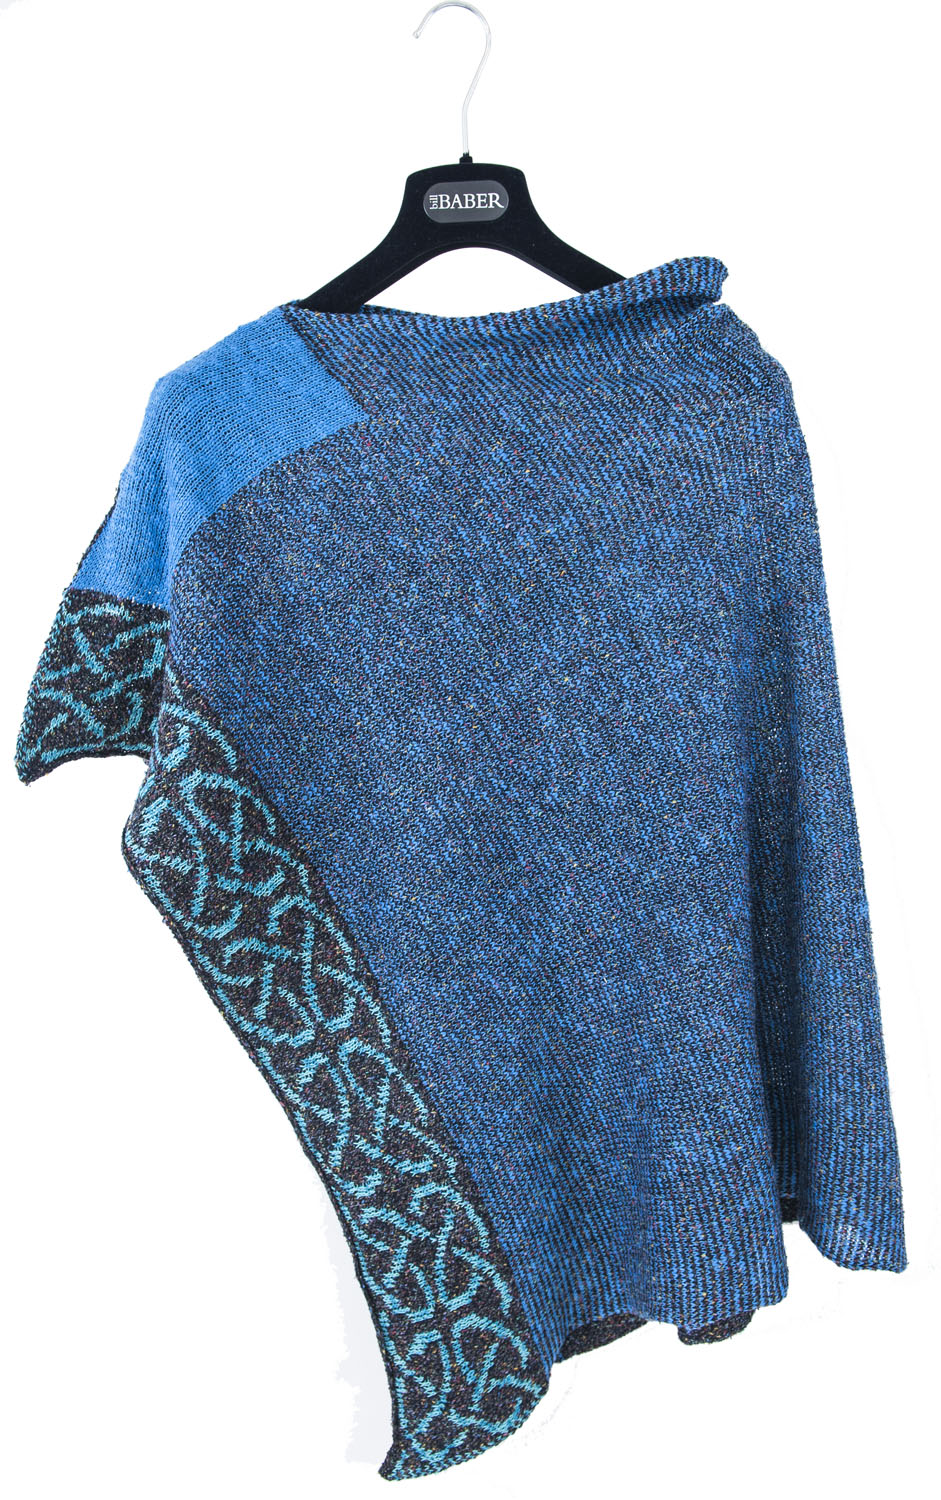 Wallace Shawl in Ocean 2